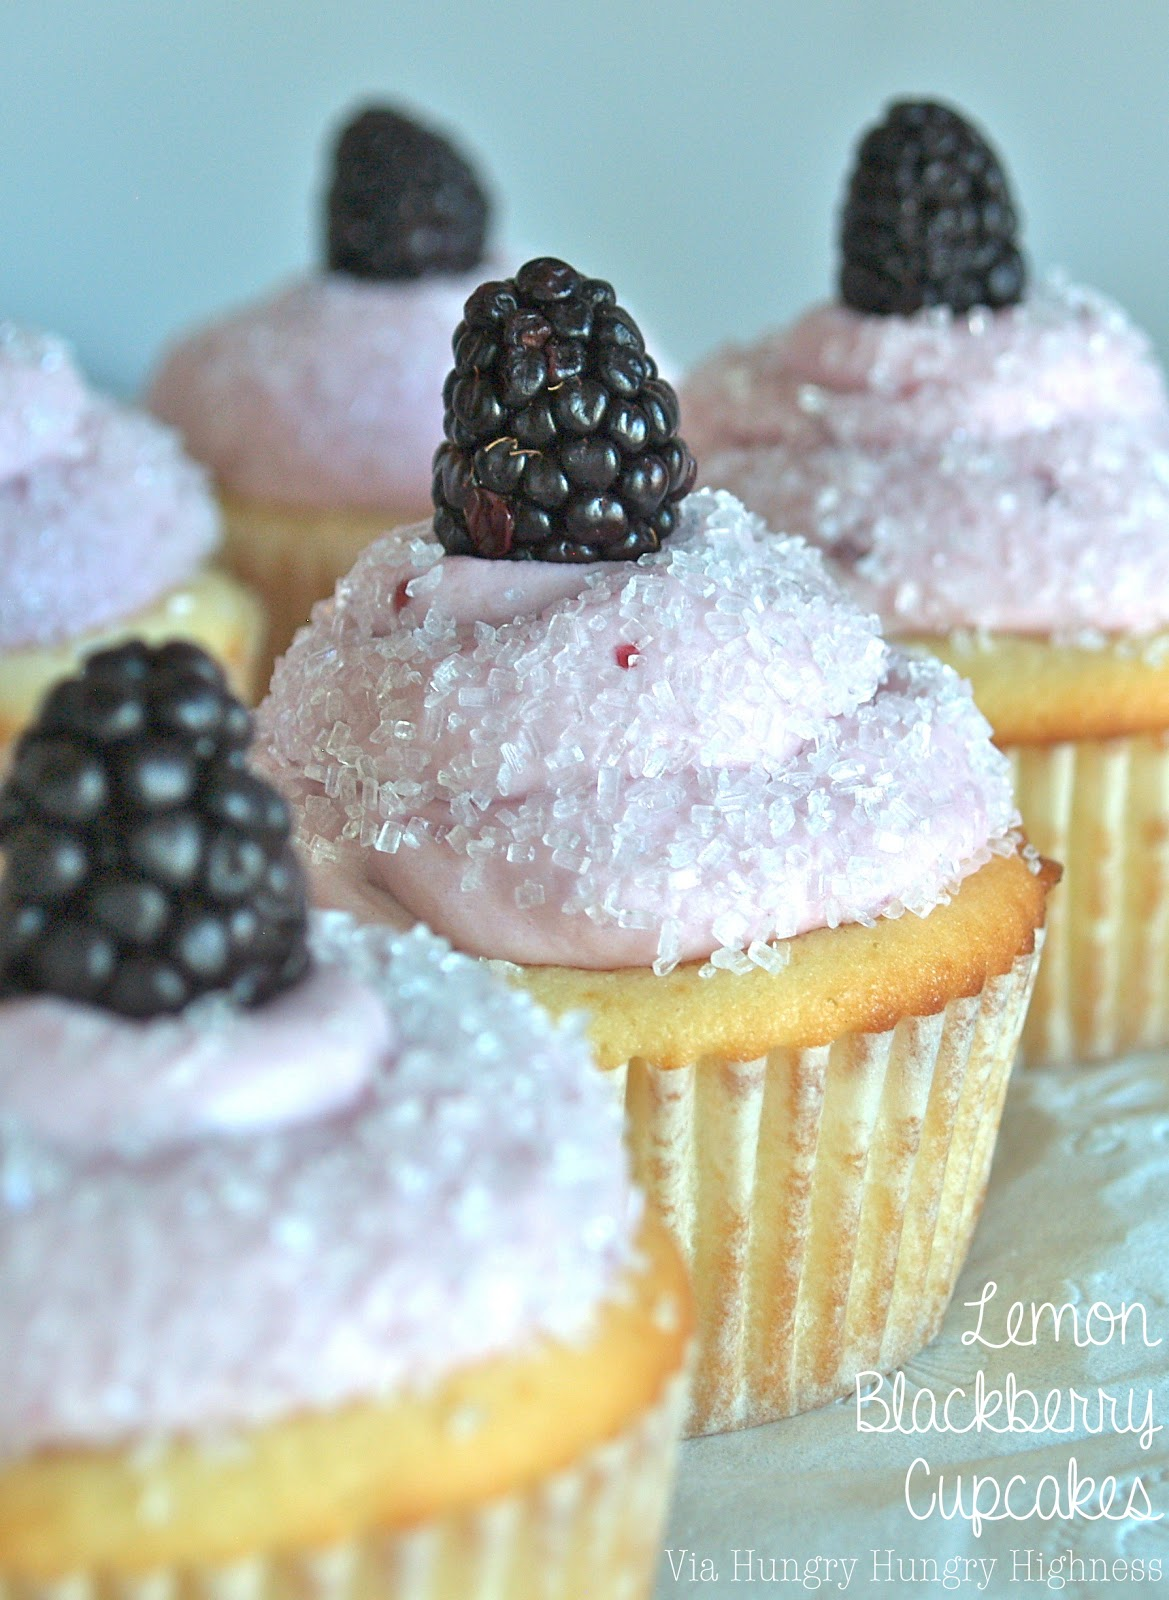 Hungry Hungry Highness: Lemon Blackberry Cupcakes